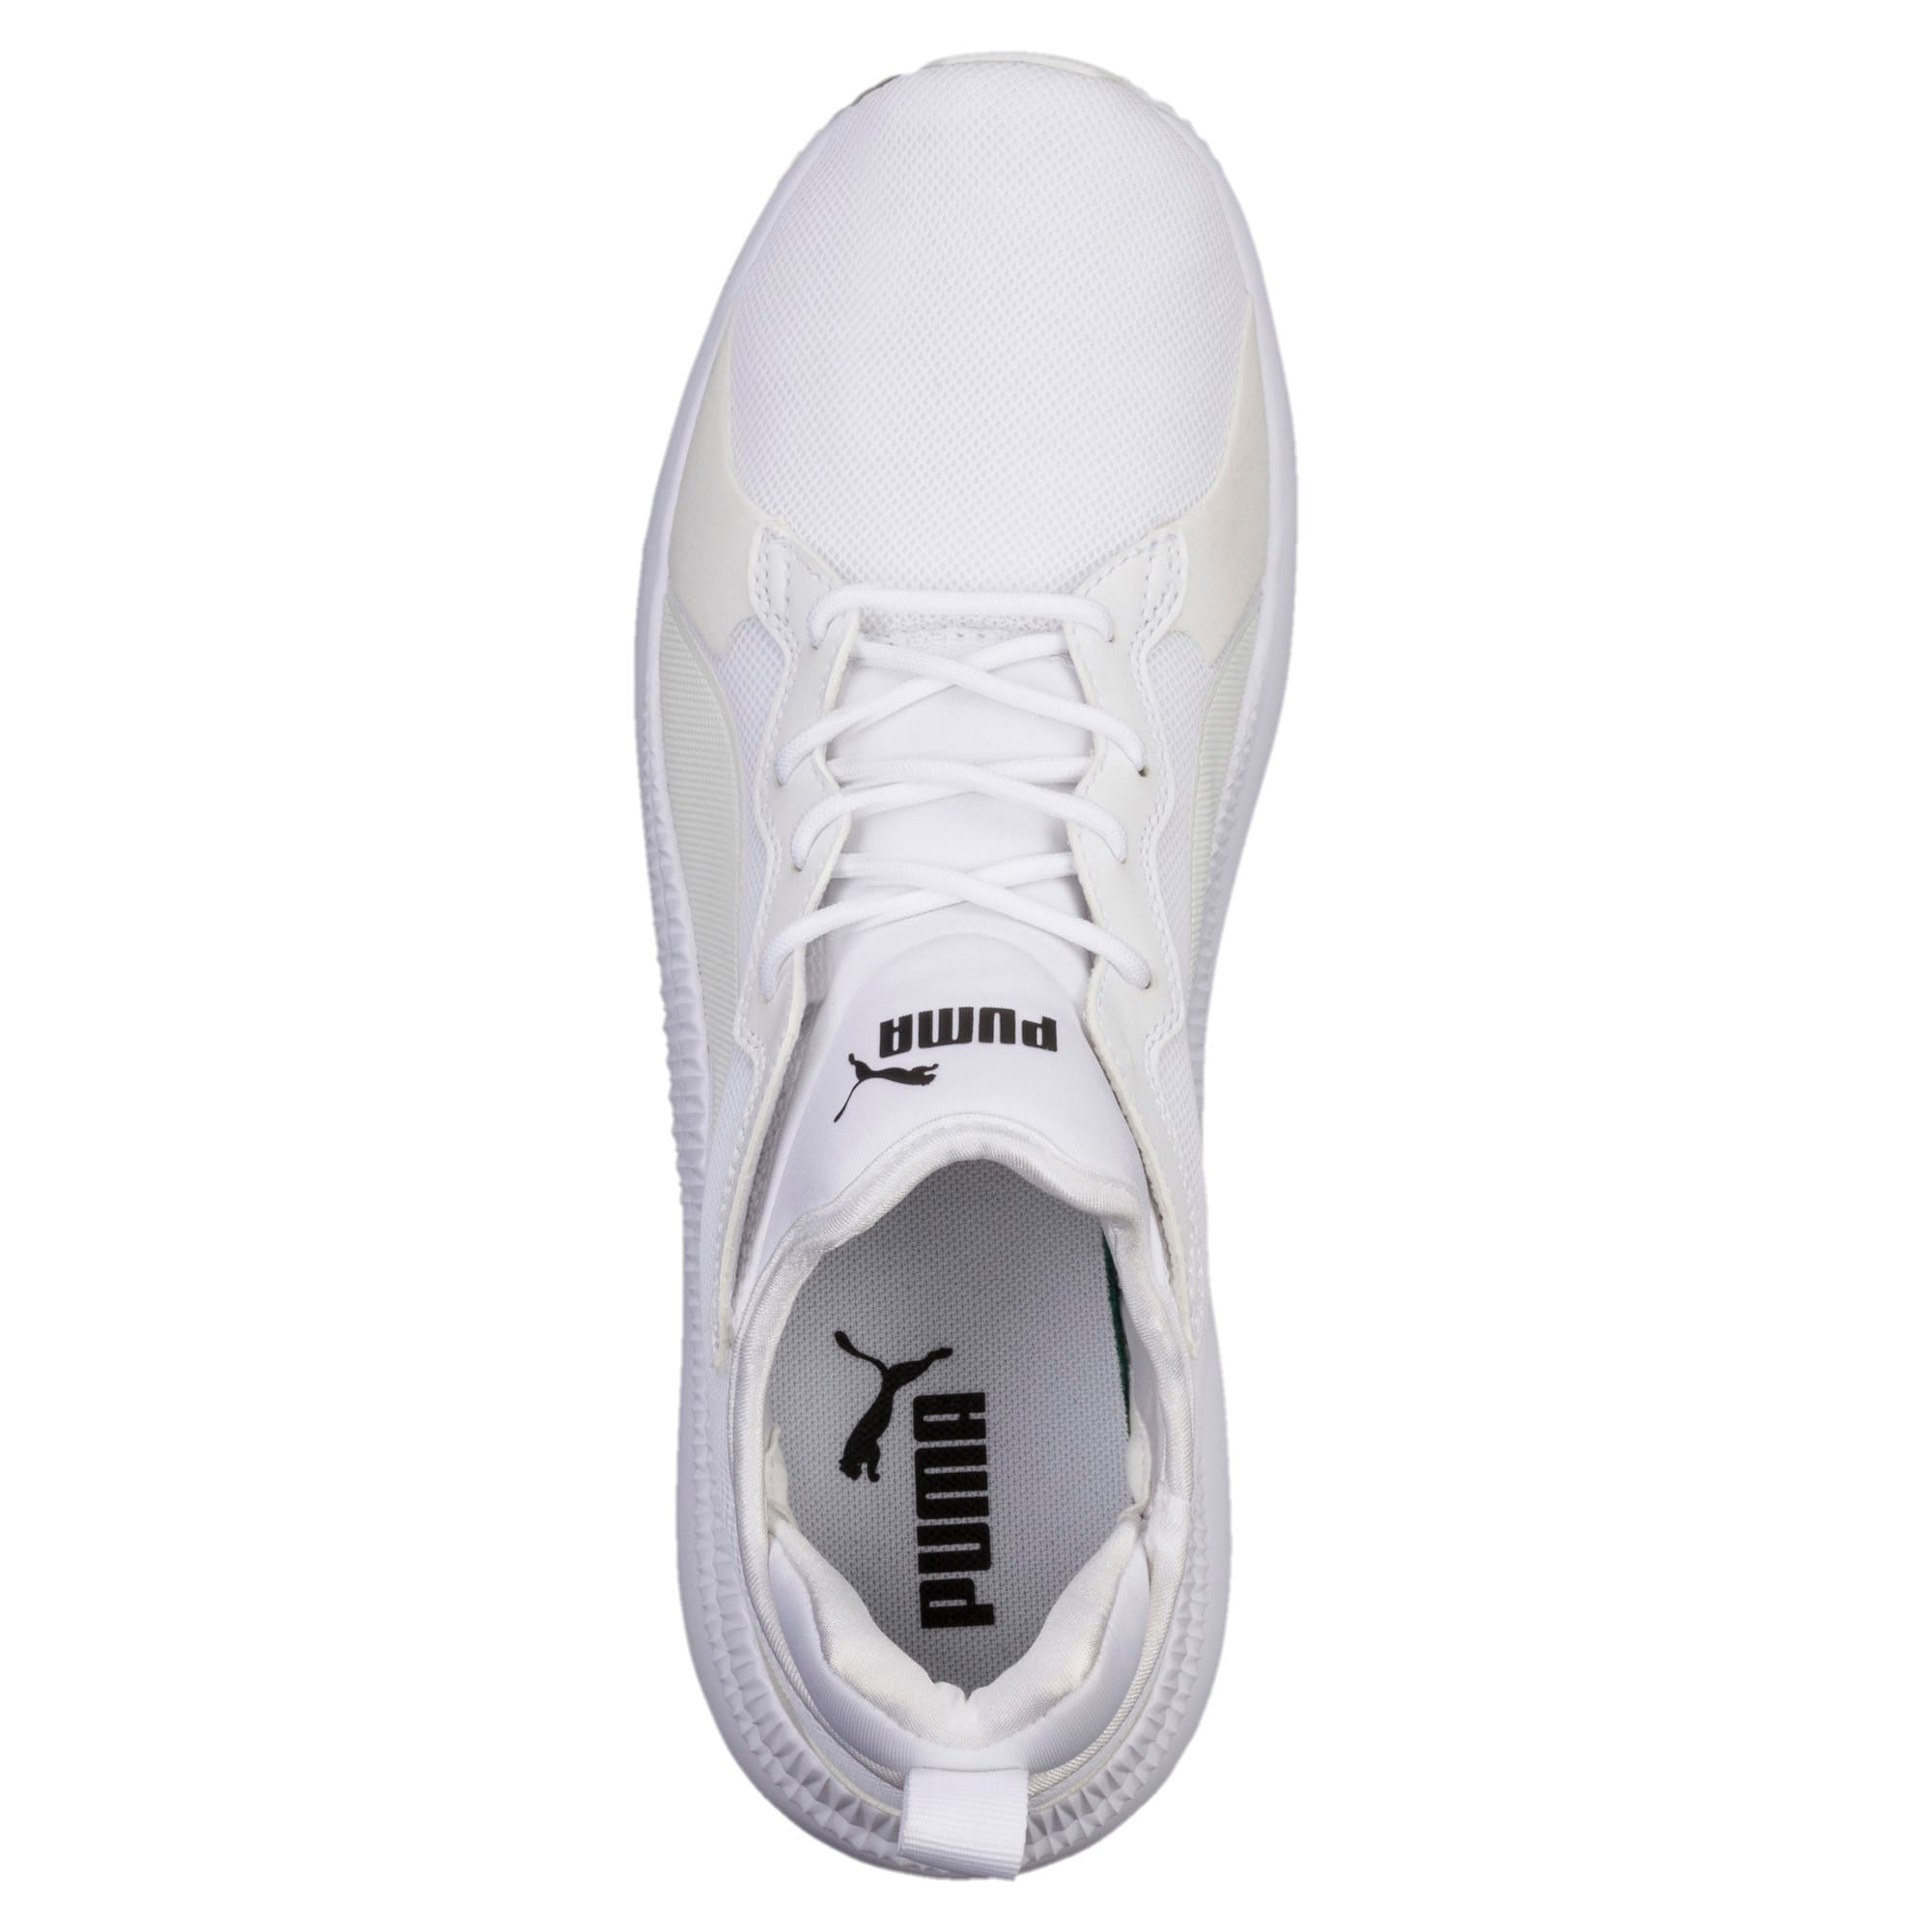 Thumbnail 4 of Pacer Next Trainers, Puma White-Puma White, medium-IND